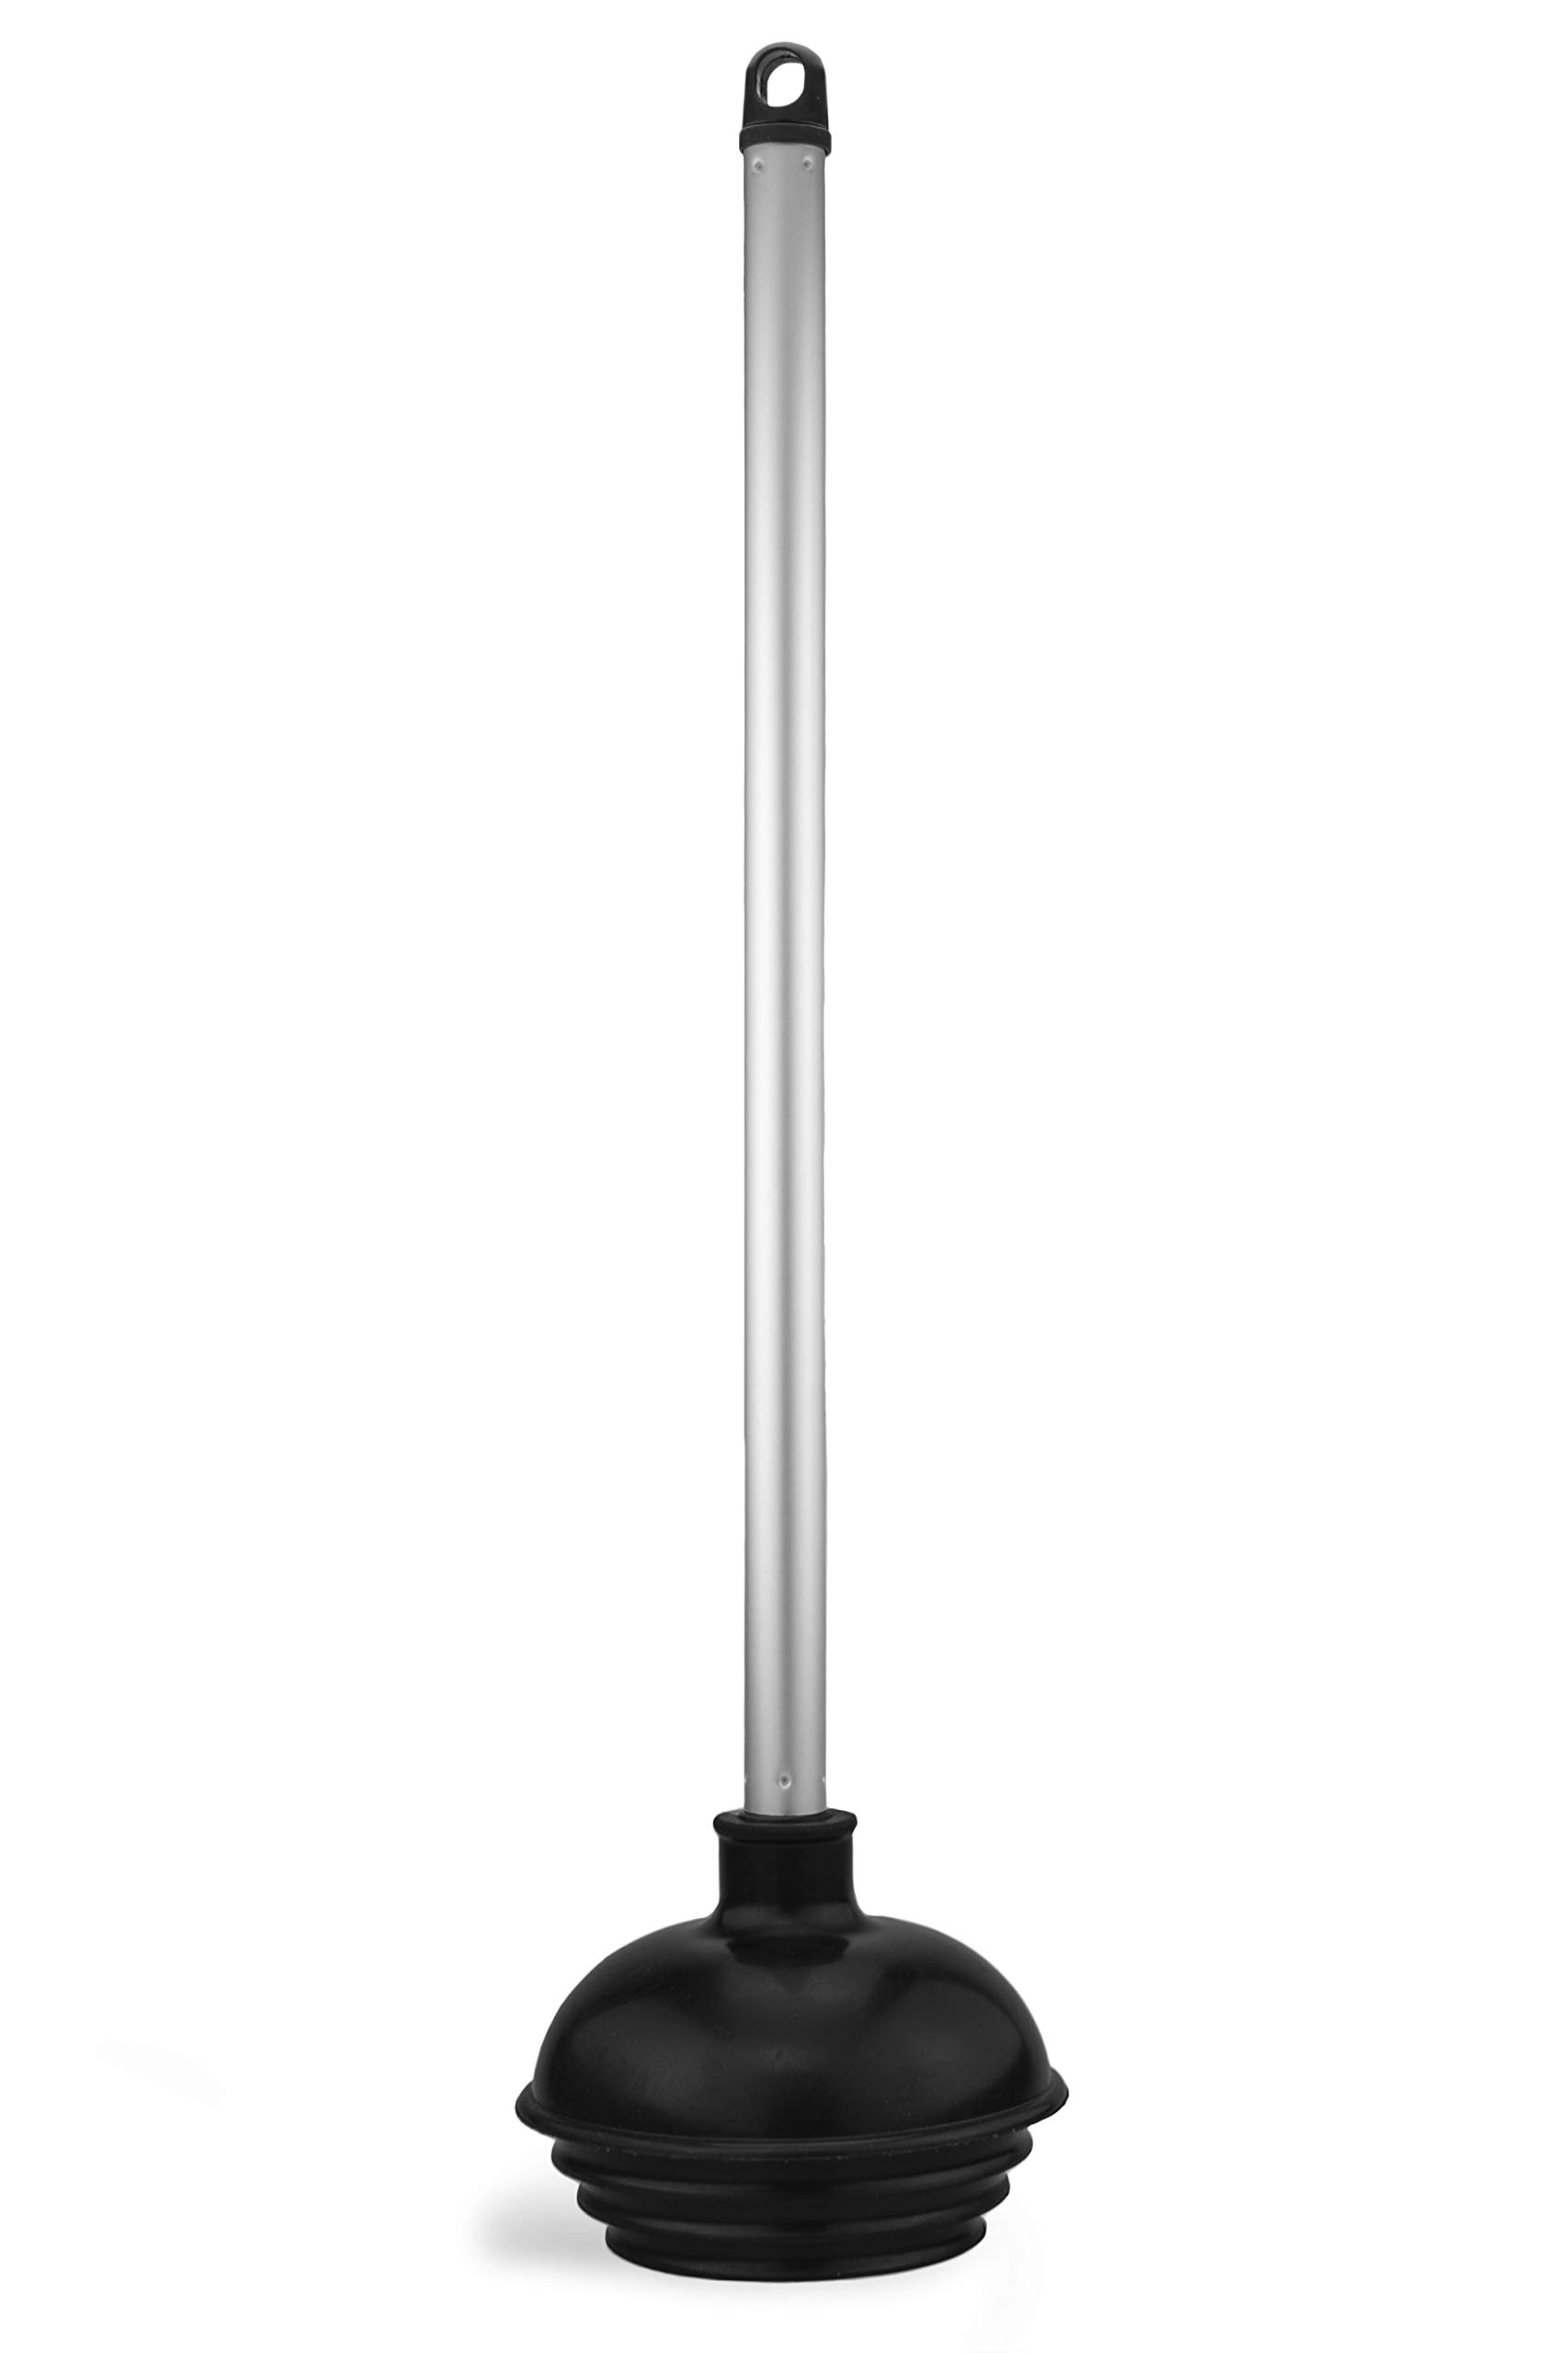 Neiko 60166A Toilet Plunger with Patented All-Angle Design | Heavy Duty | Aluminum Handle , Black